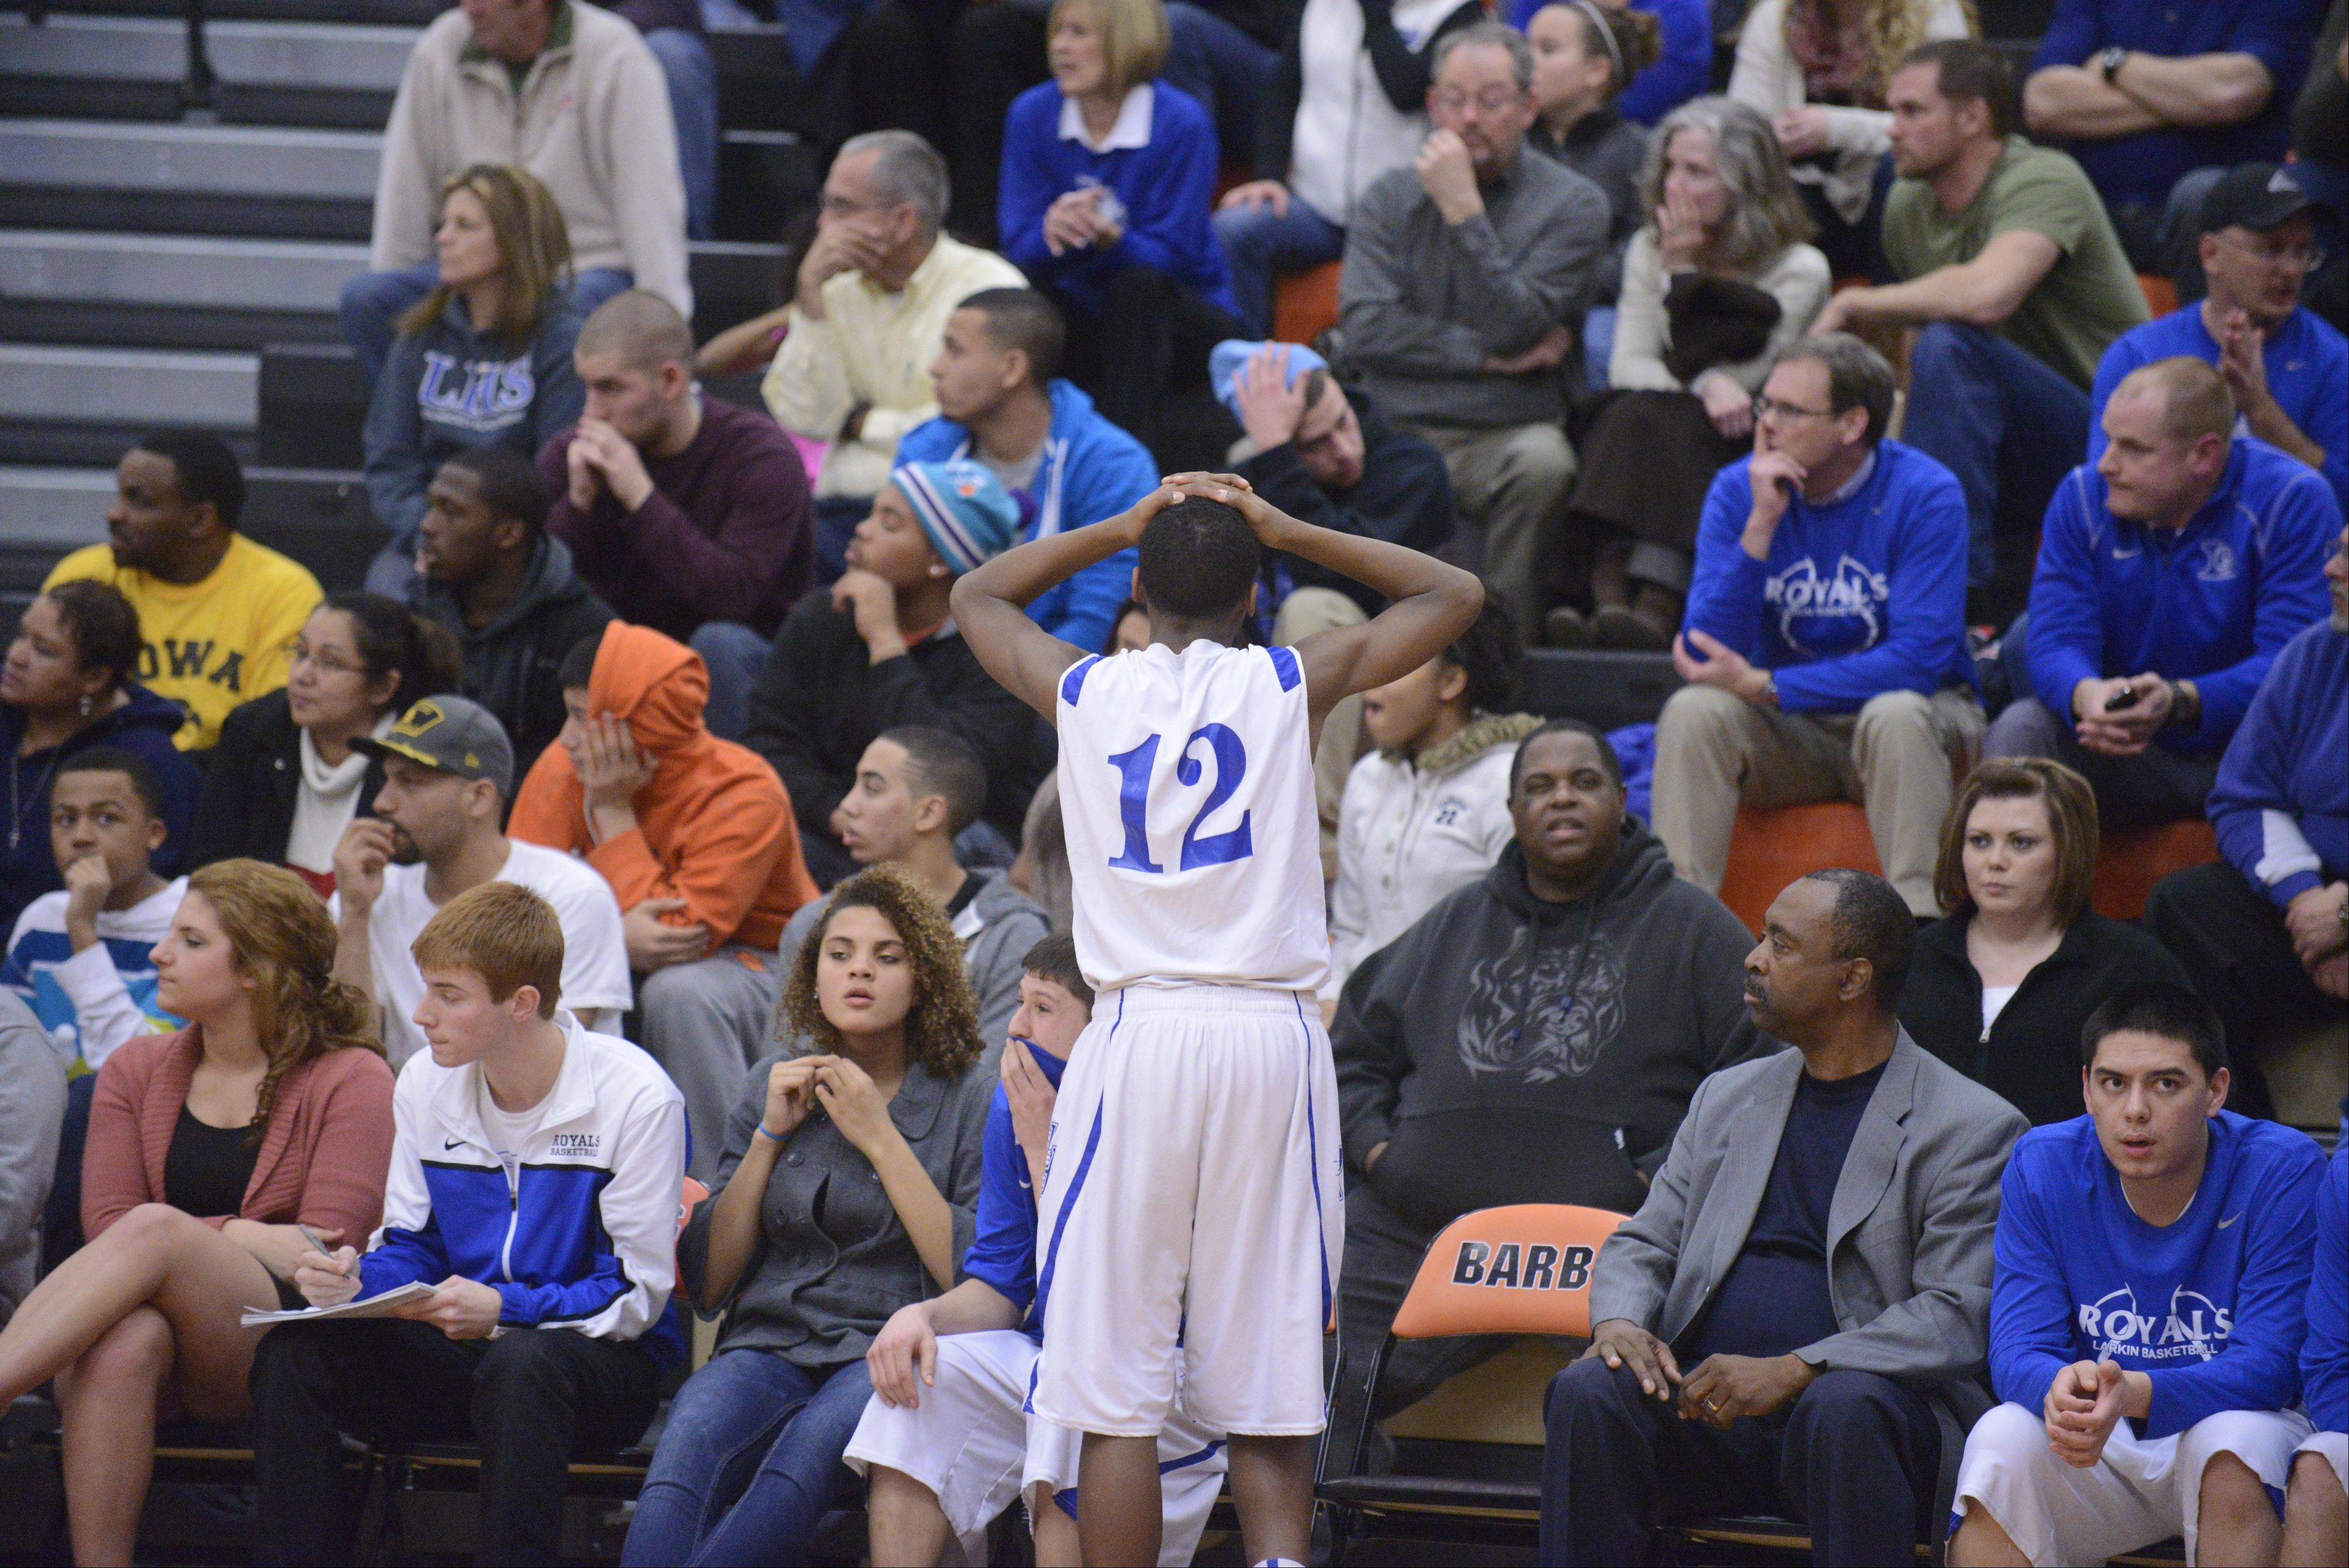 Larkin's Hannibal Marshall realizes the Royals will lose to Rockford Jefferson's in the final minute of the fourth quarter of the Class 4A DeKalb sectional semifinals on Wednesday, March 6.